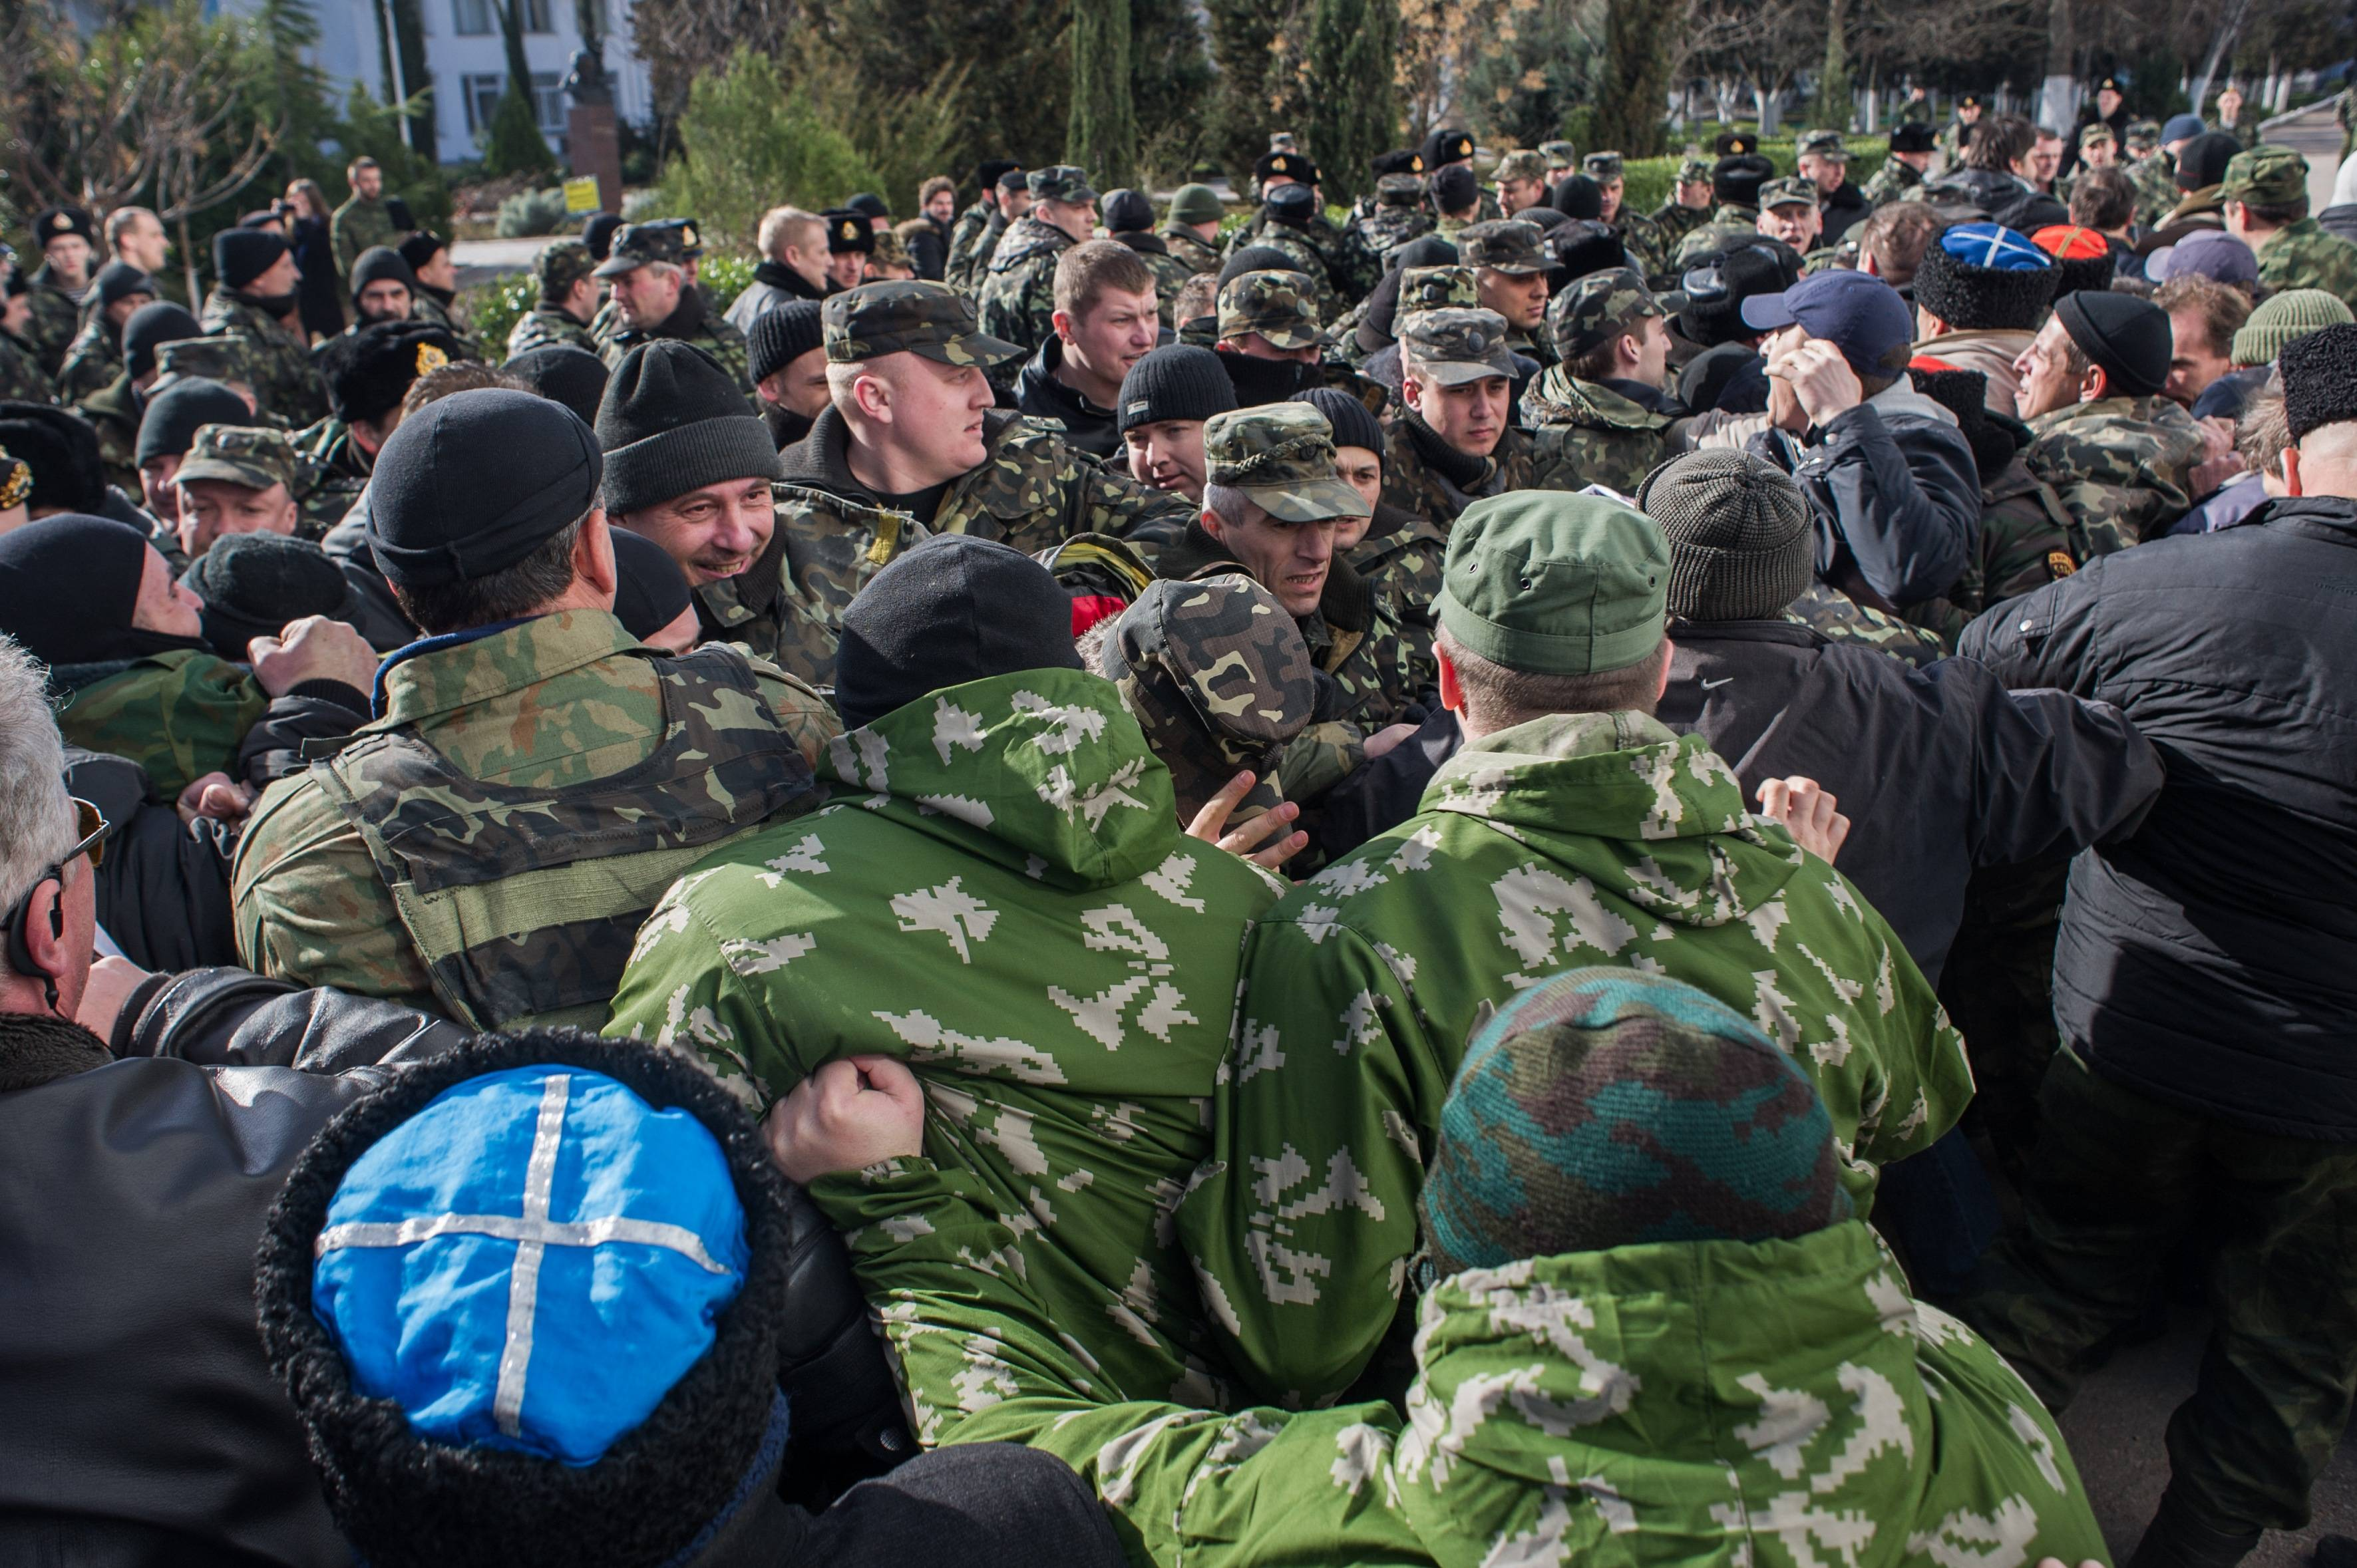 Crimean self-defense forces scuffle with Ukrainian servicemen outside the Ukrainian Navy headquarters in Sevastopol, Crimea, Wednesday, March 19, 2014.